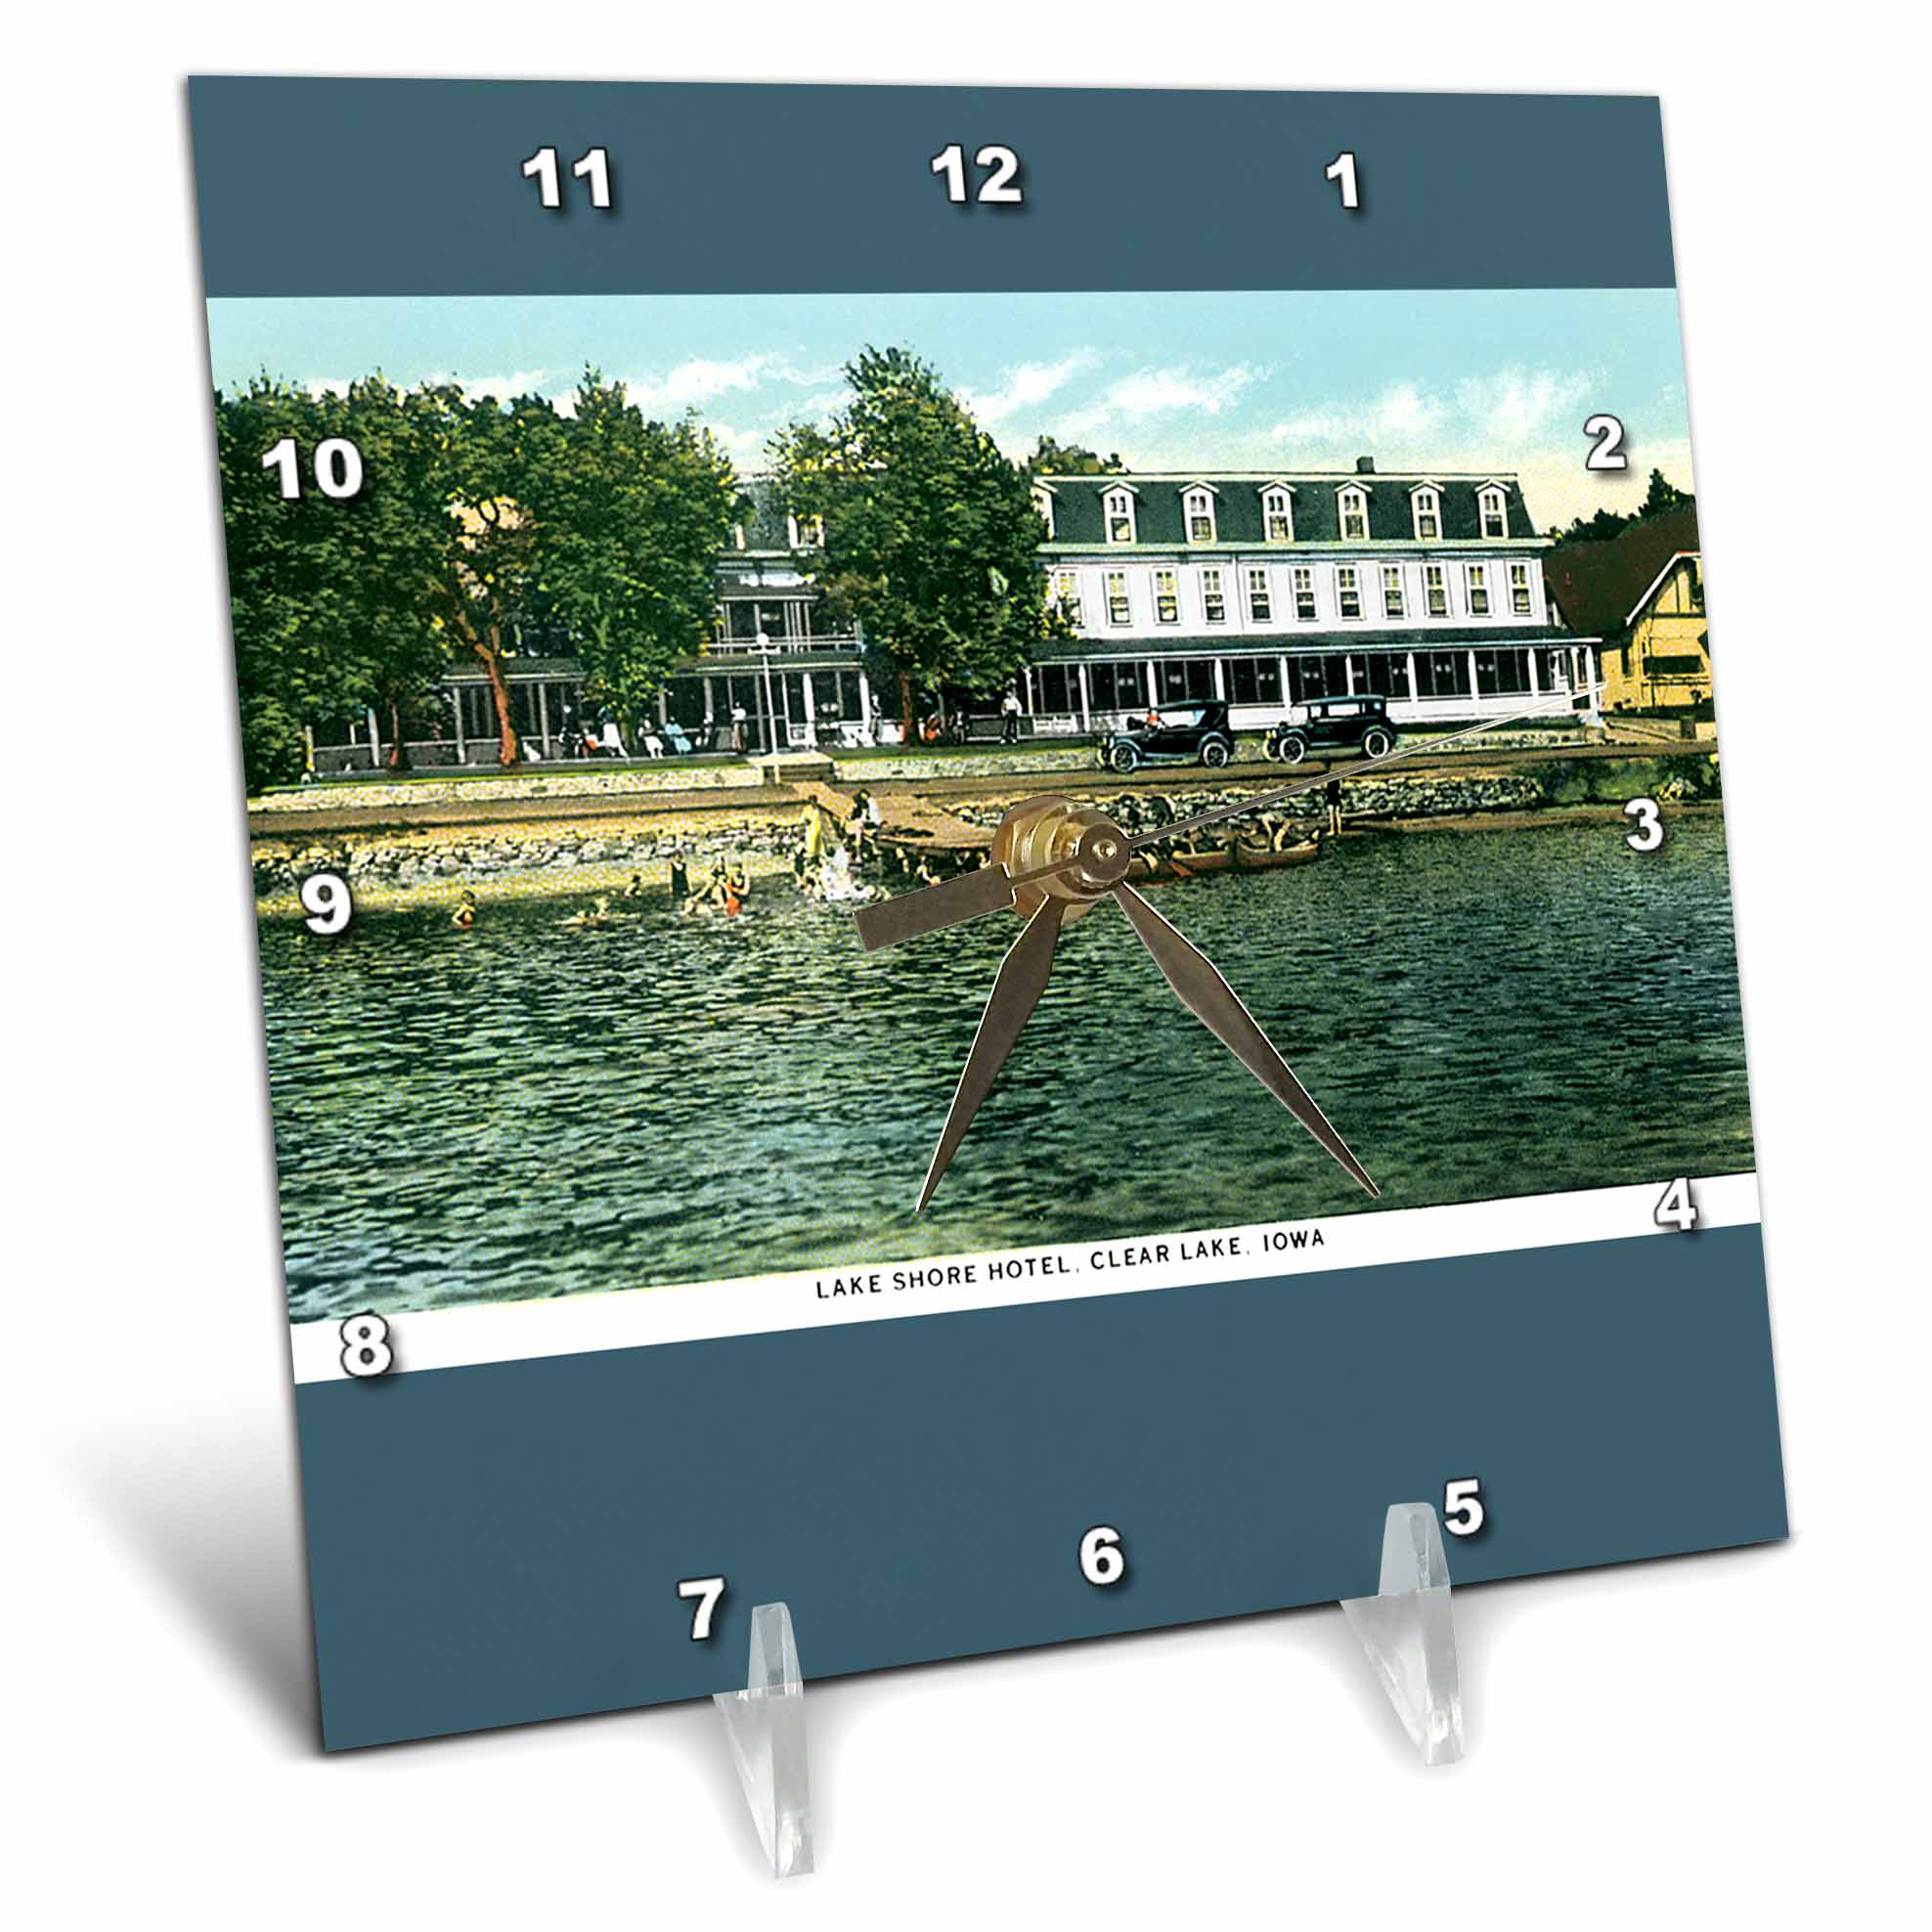 3dRose Lake Shore Hotel Clear Lake Iowa Waterfront Postcard Reproduction, Desk Clock, 6 by 6-inch by 3dRose